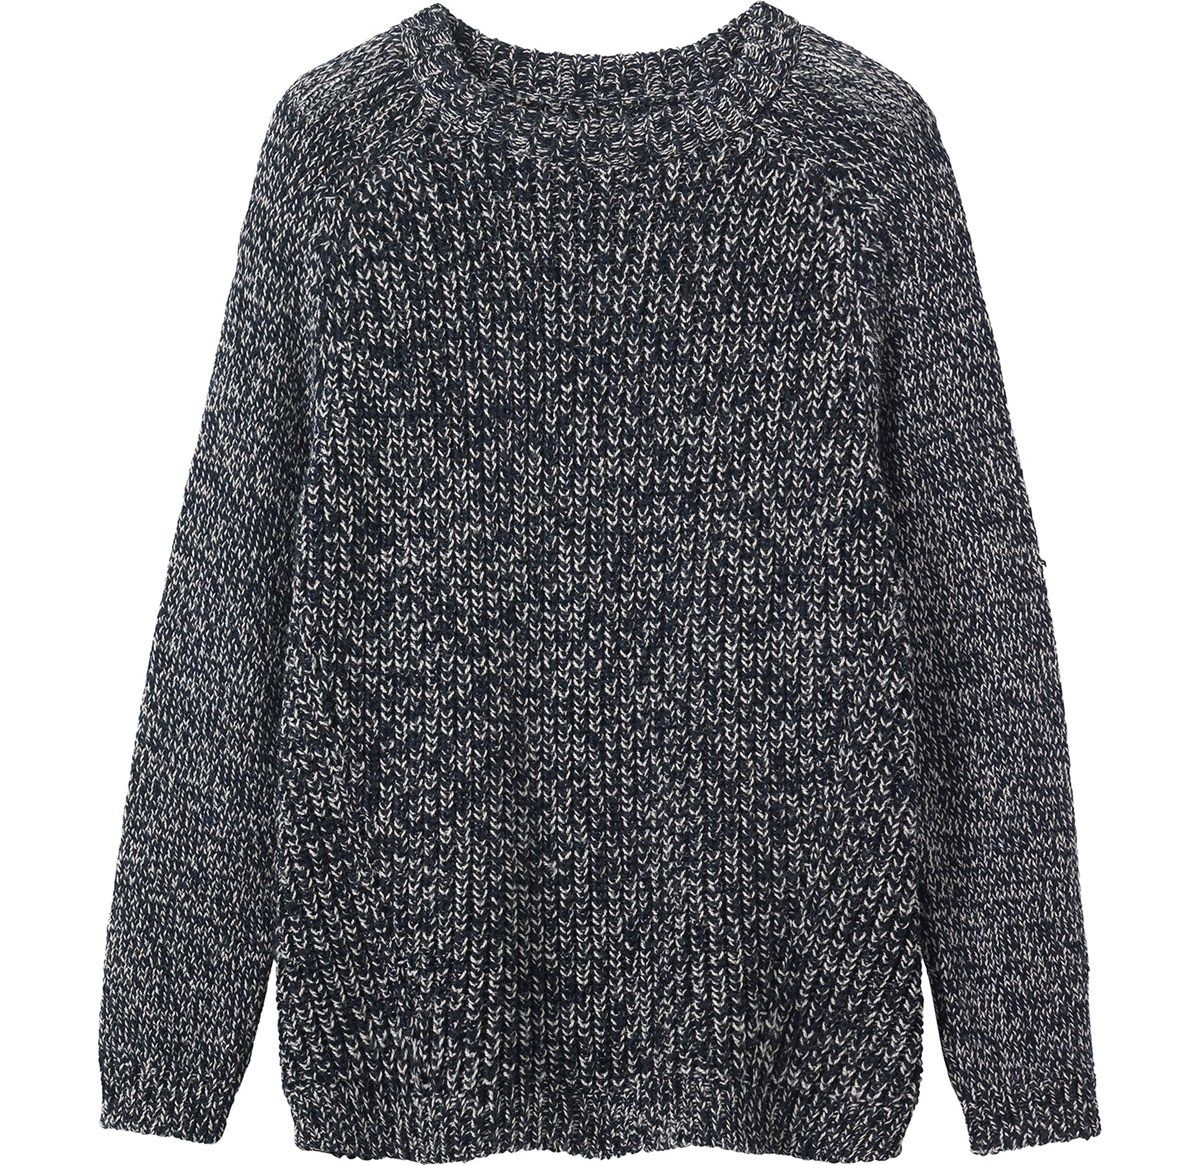 Fisherman's rib pullover, with a two colour twisted yarn, in a ...